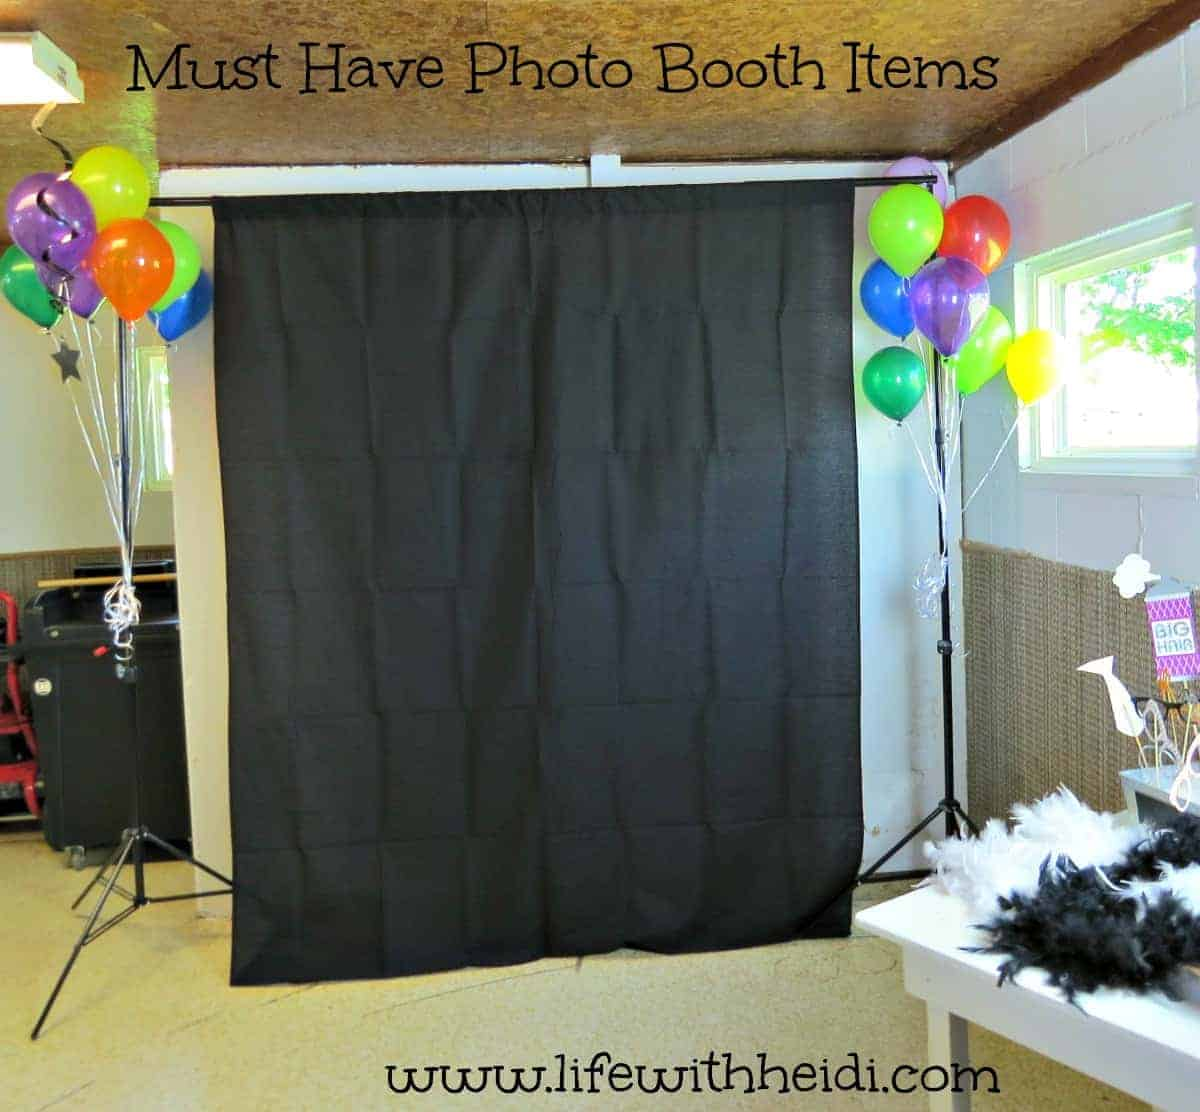 Must Have Photo Booth Items